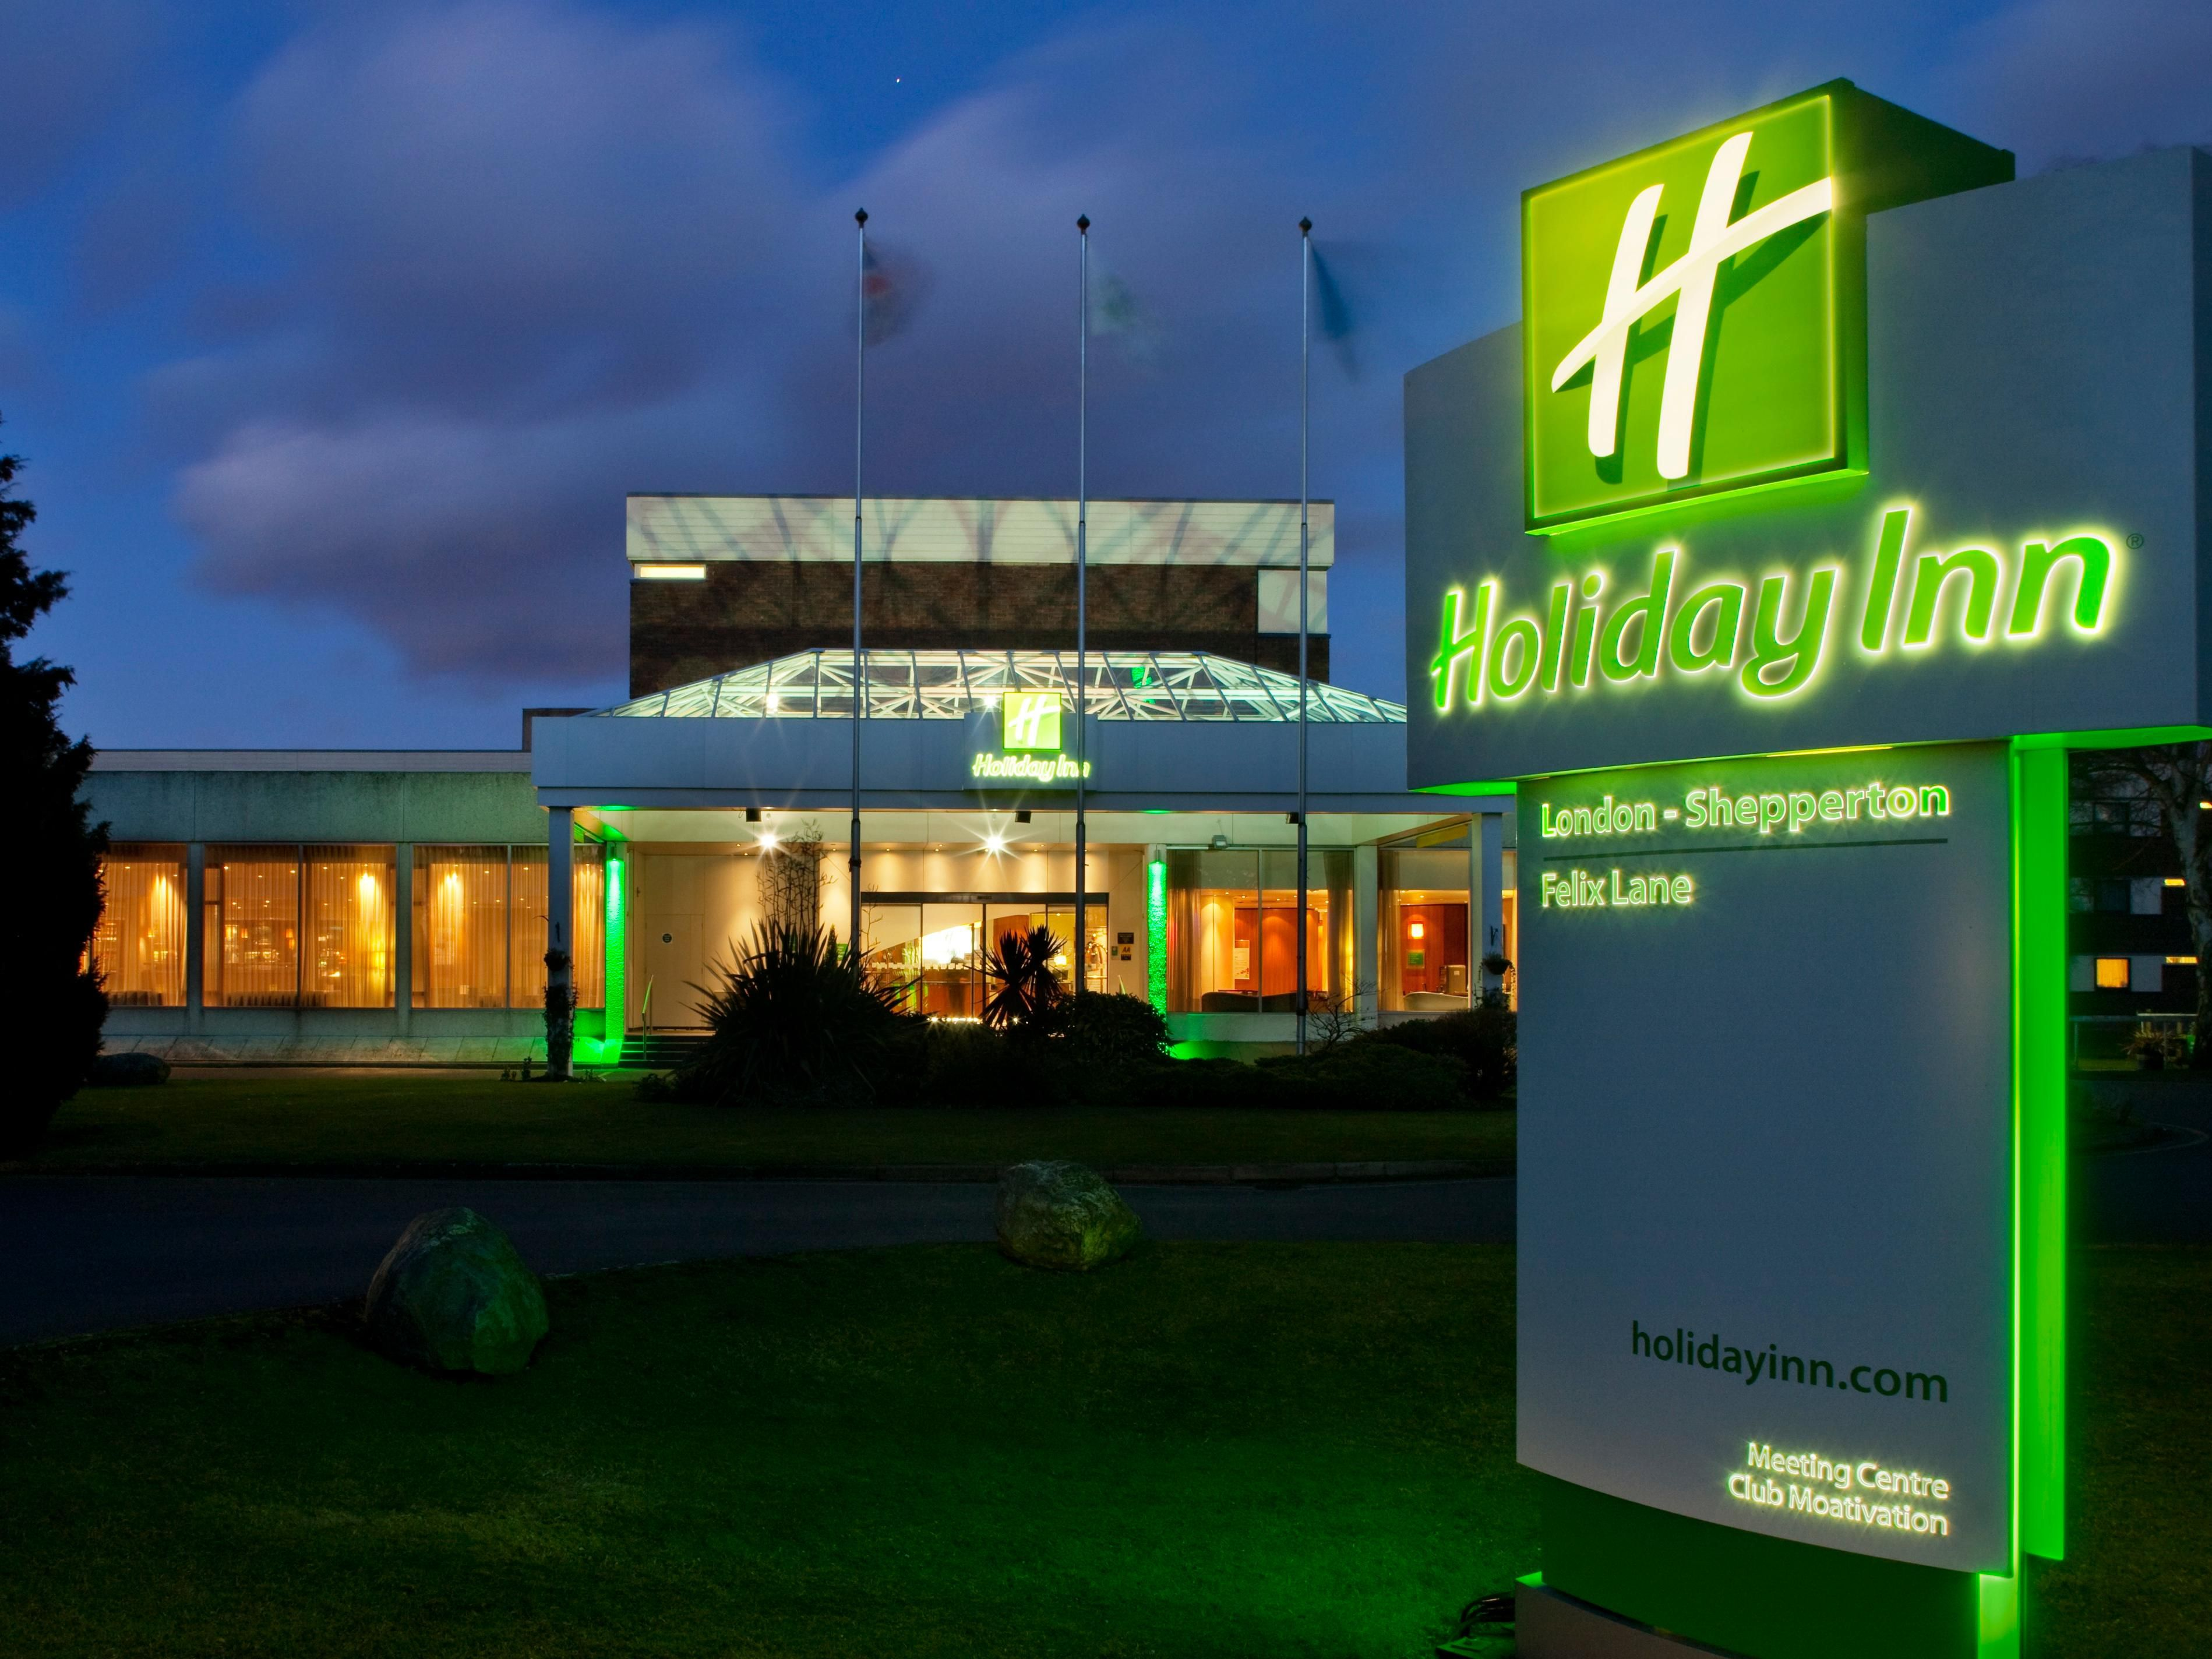 Holiday Inn London Shepperton Hotel Entrance During Night Time